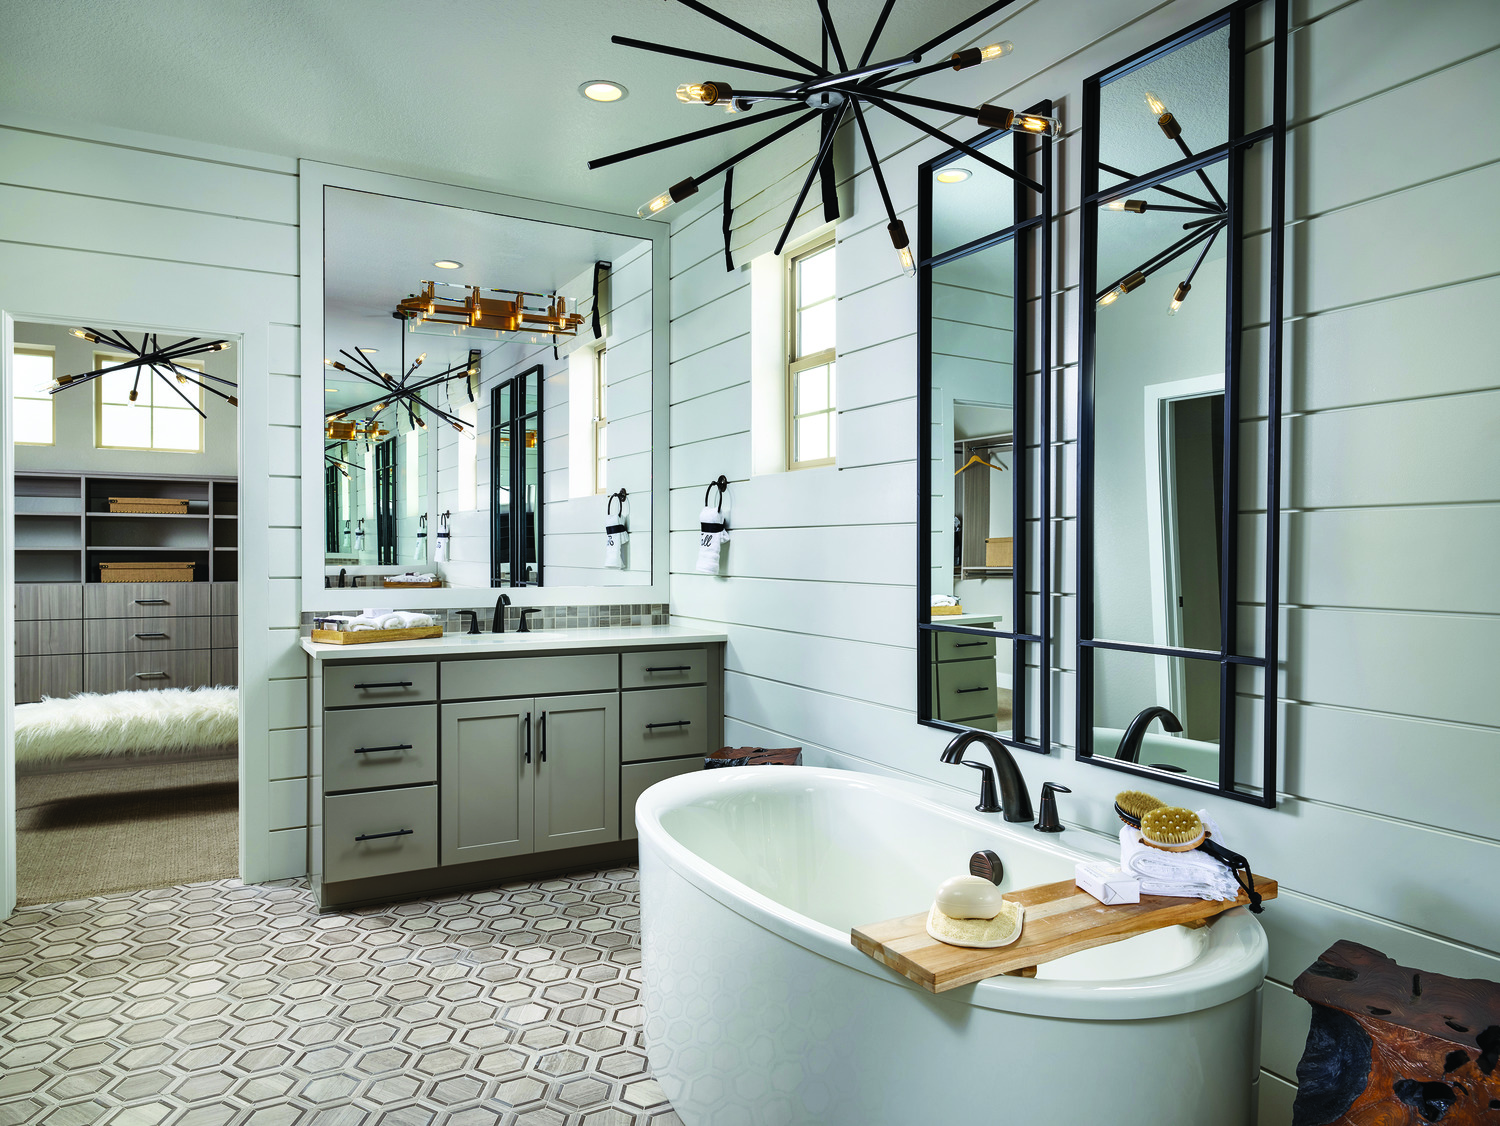 Bathroom with a stand-alone bathtub and shiplap walls.